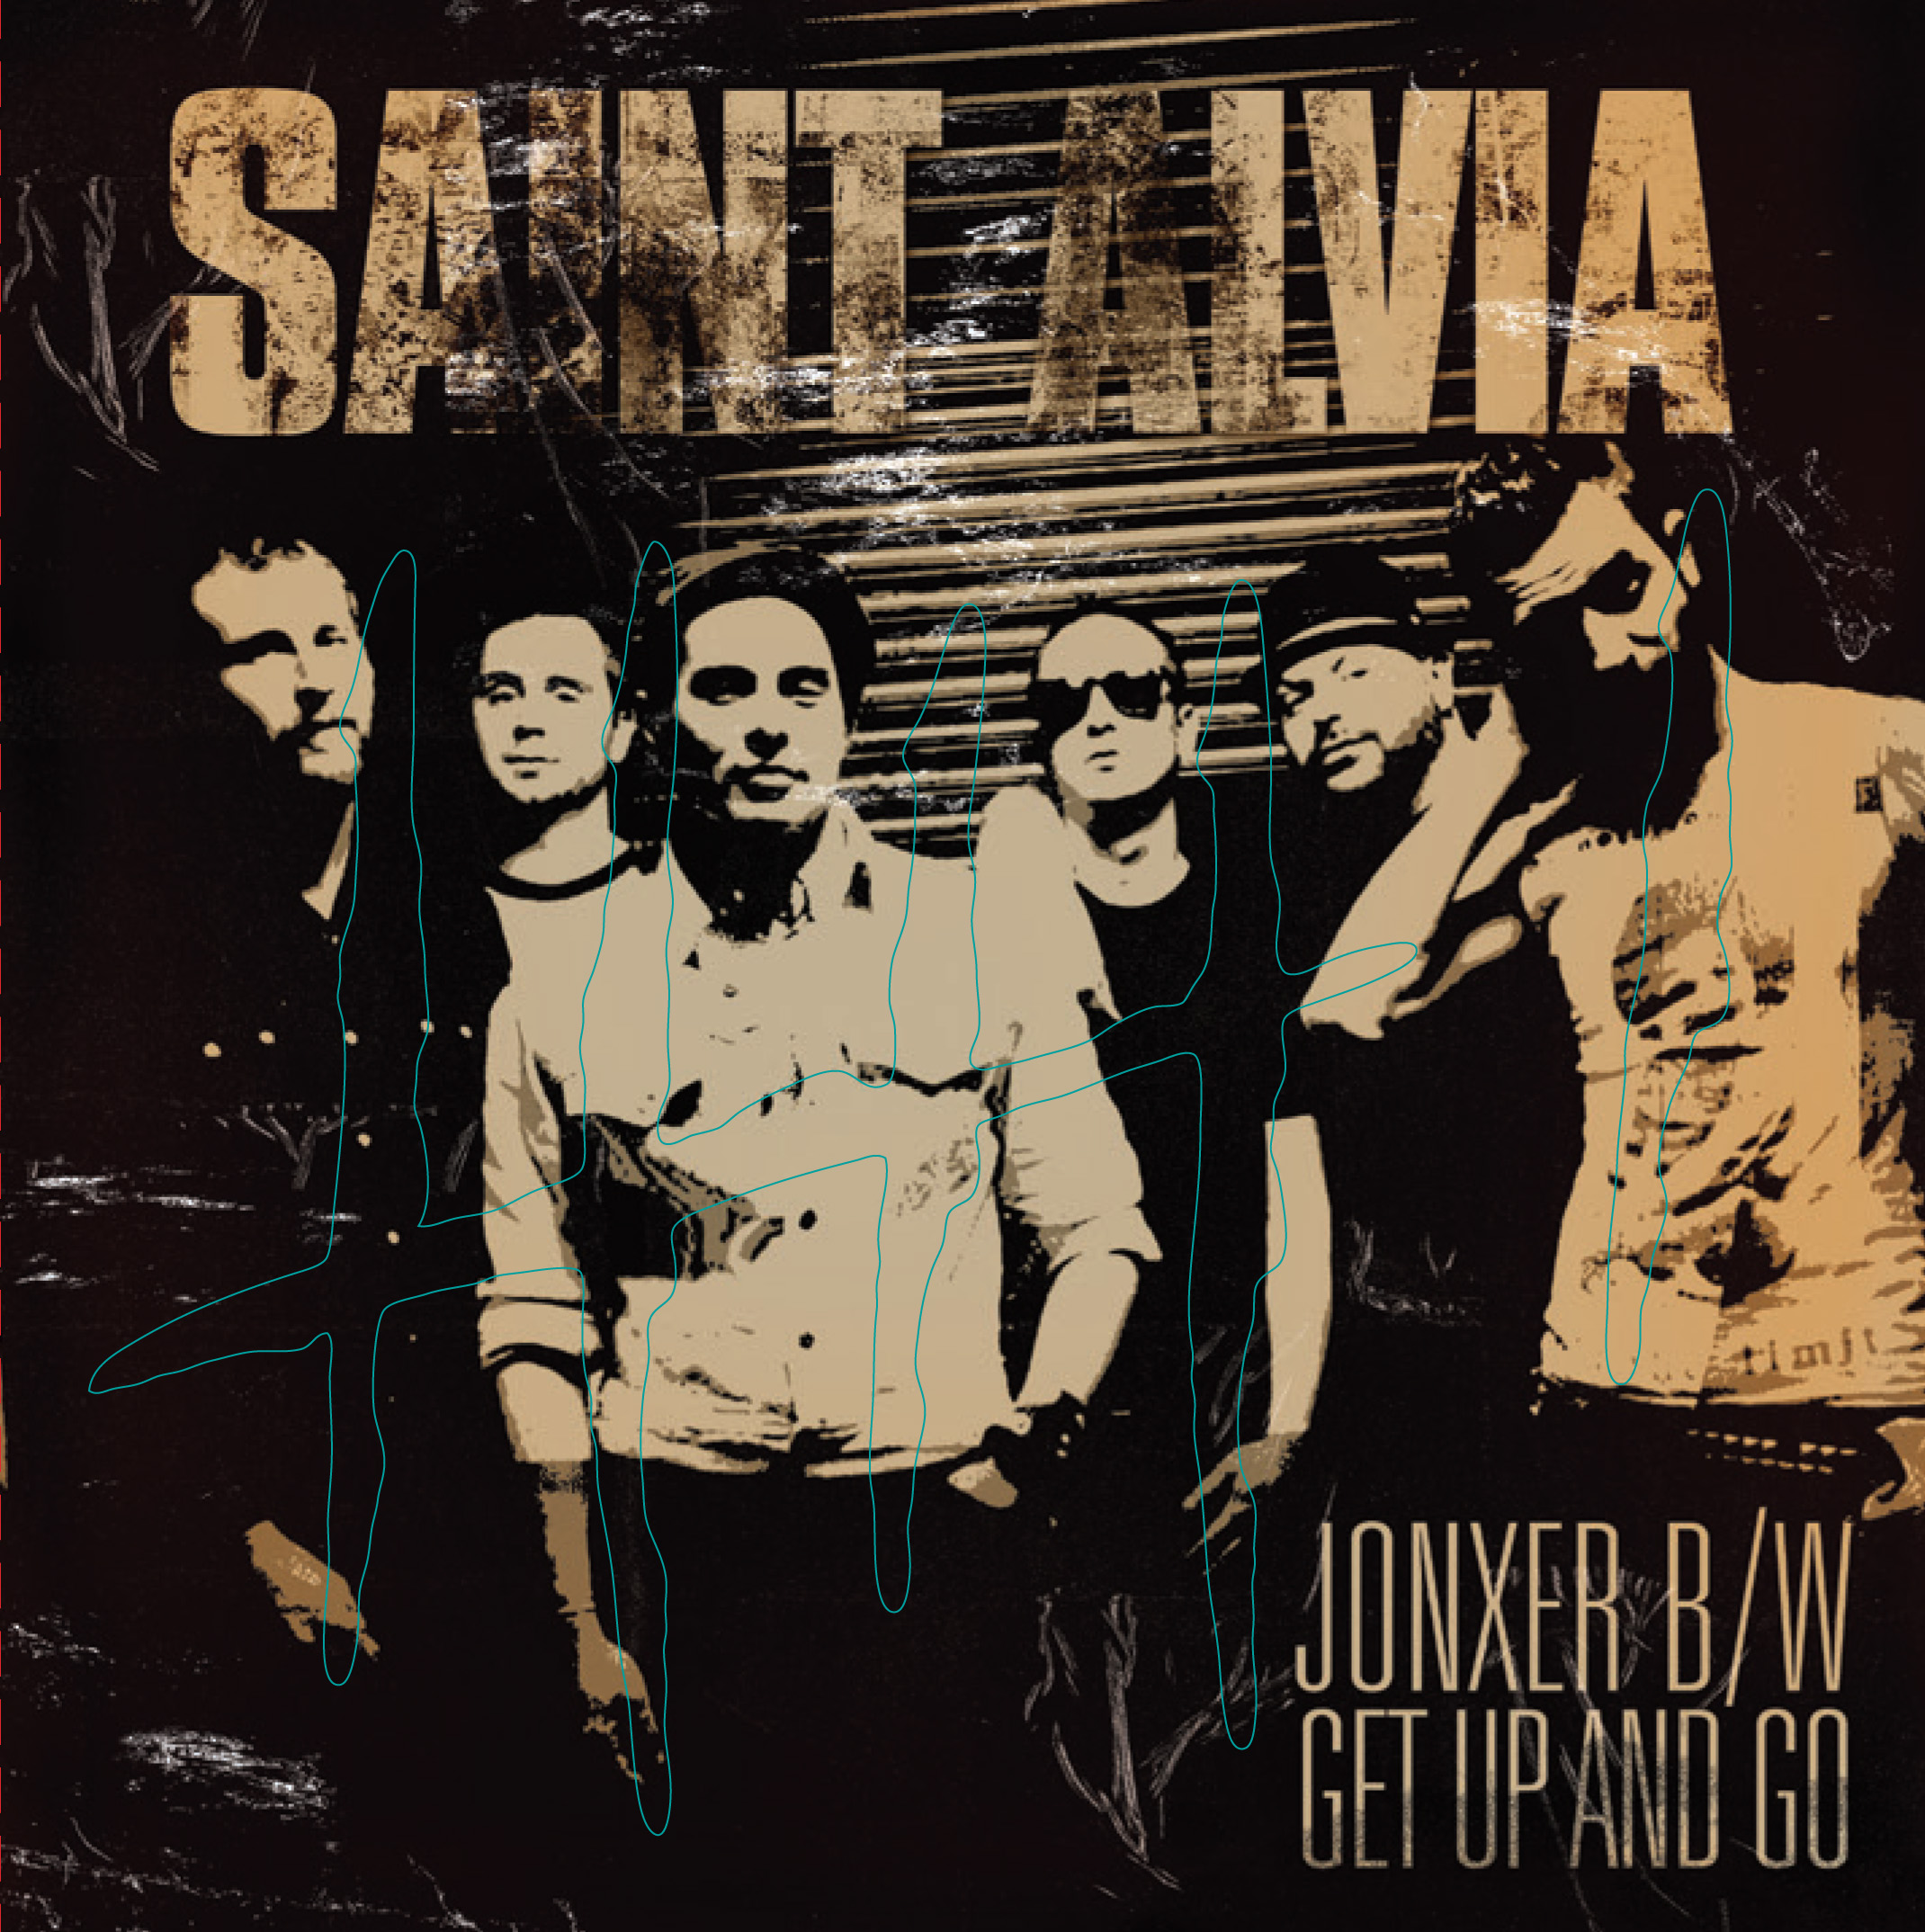 Saint Alvia - Jonxer b/w & Get Up and Go 7